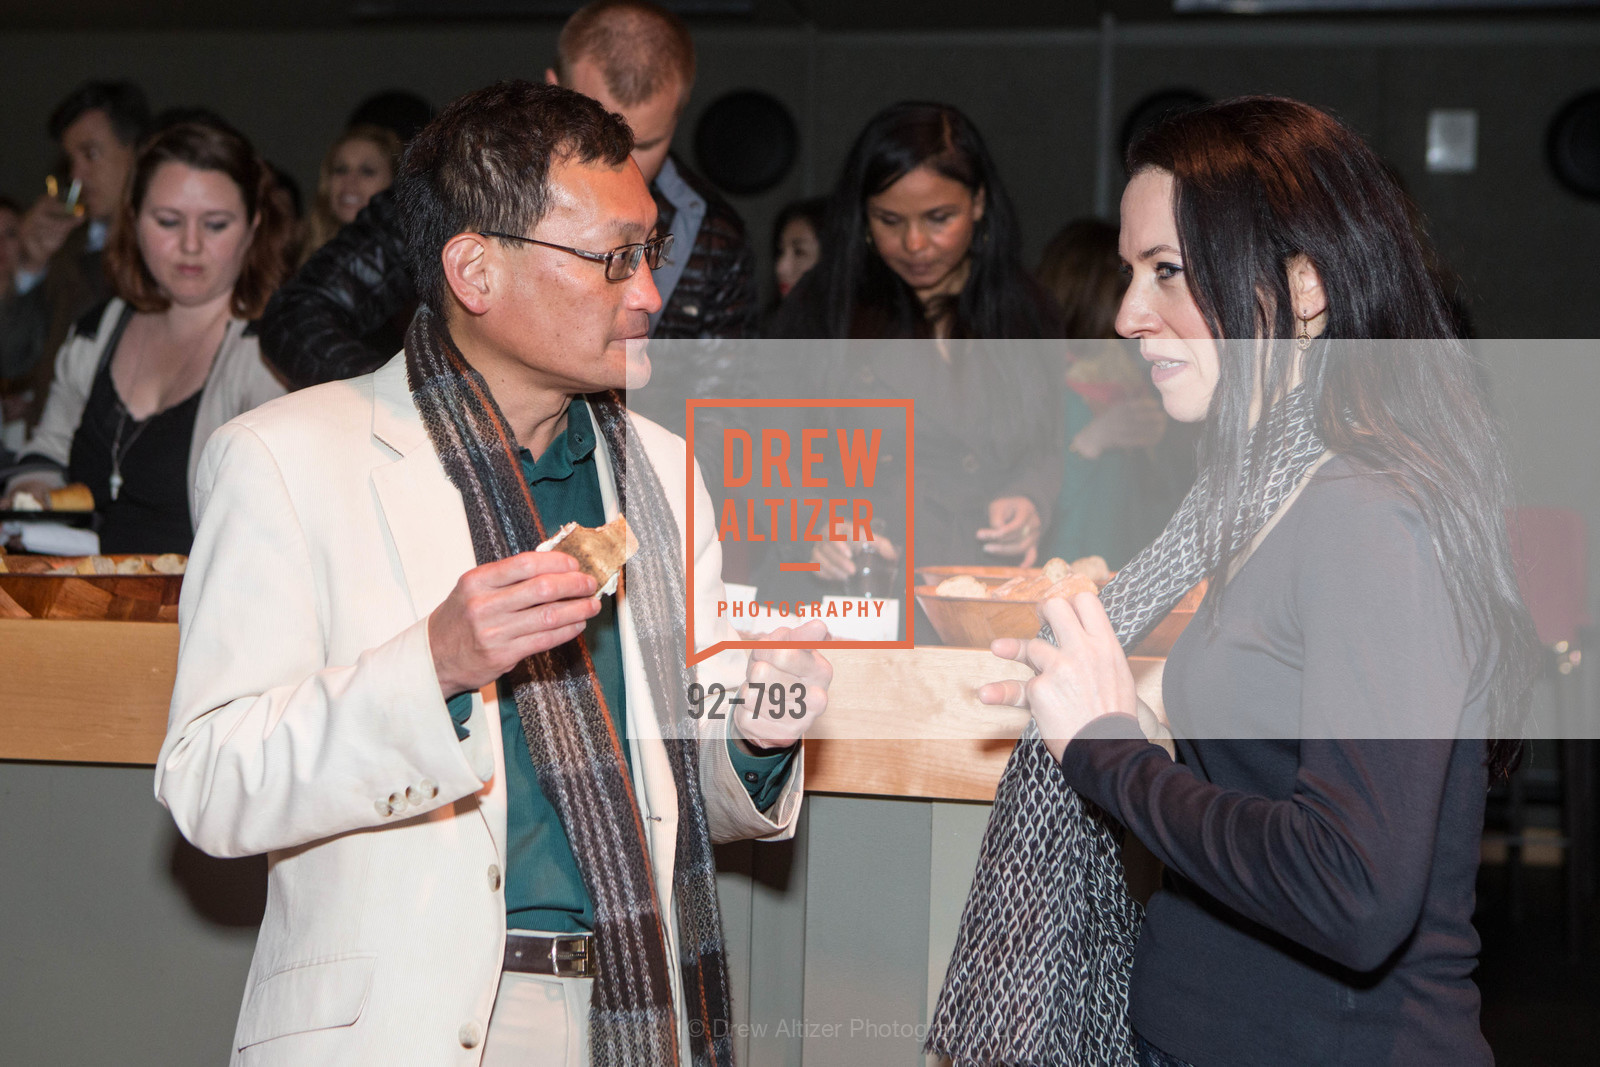 Extras, SF BRAVO CLUB Sneak Peek at the EXPLORATORIUM, April 23rd, 2015, Photo,Drew Altizer, Drew Altizer Photography, full-service agency, private events, San Francisco photographer, photographer california